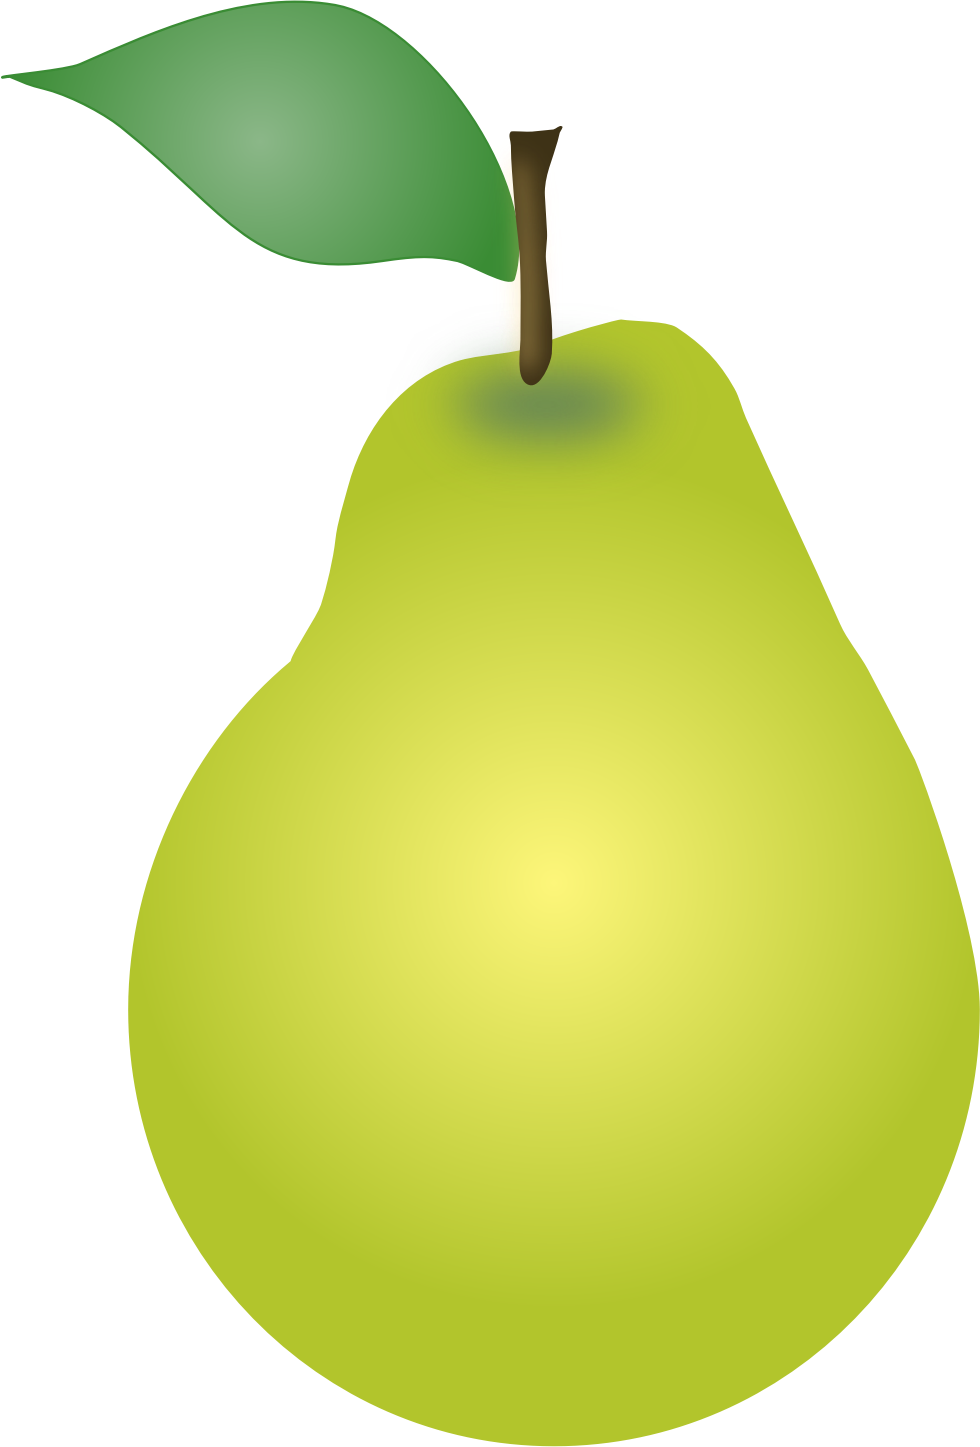 free Pear SVG, Pear clipart by ChihuahuaDesign #freeclipart.